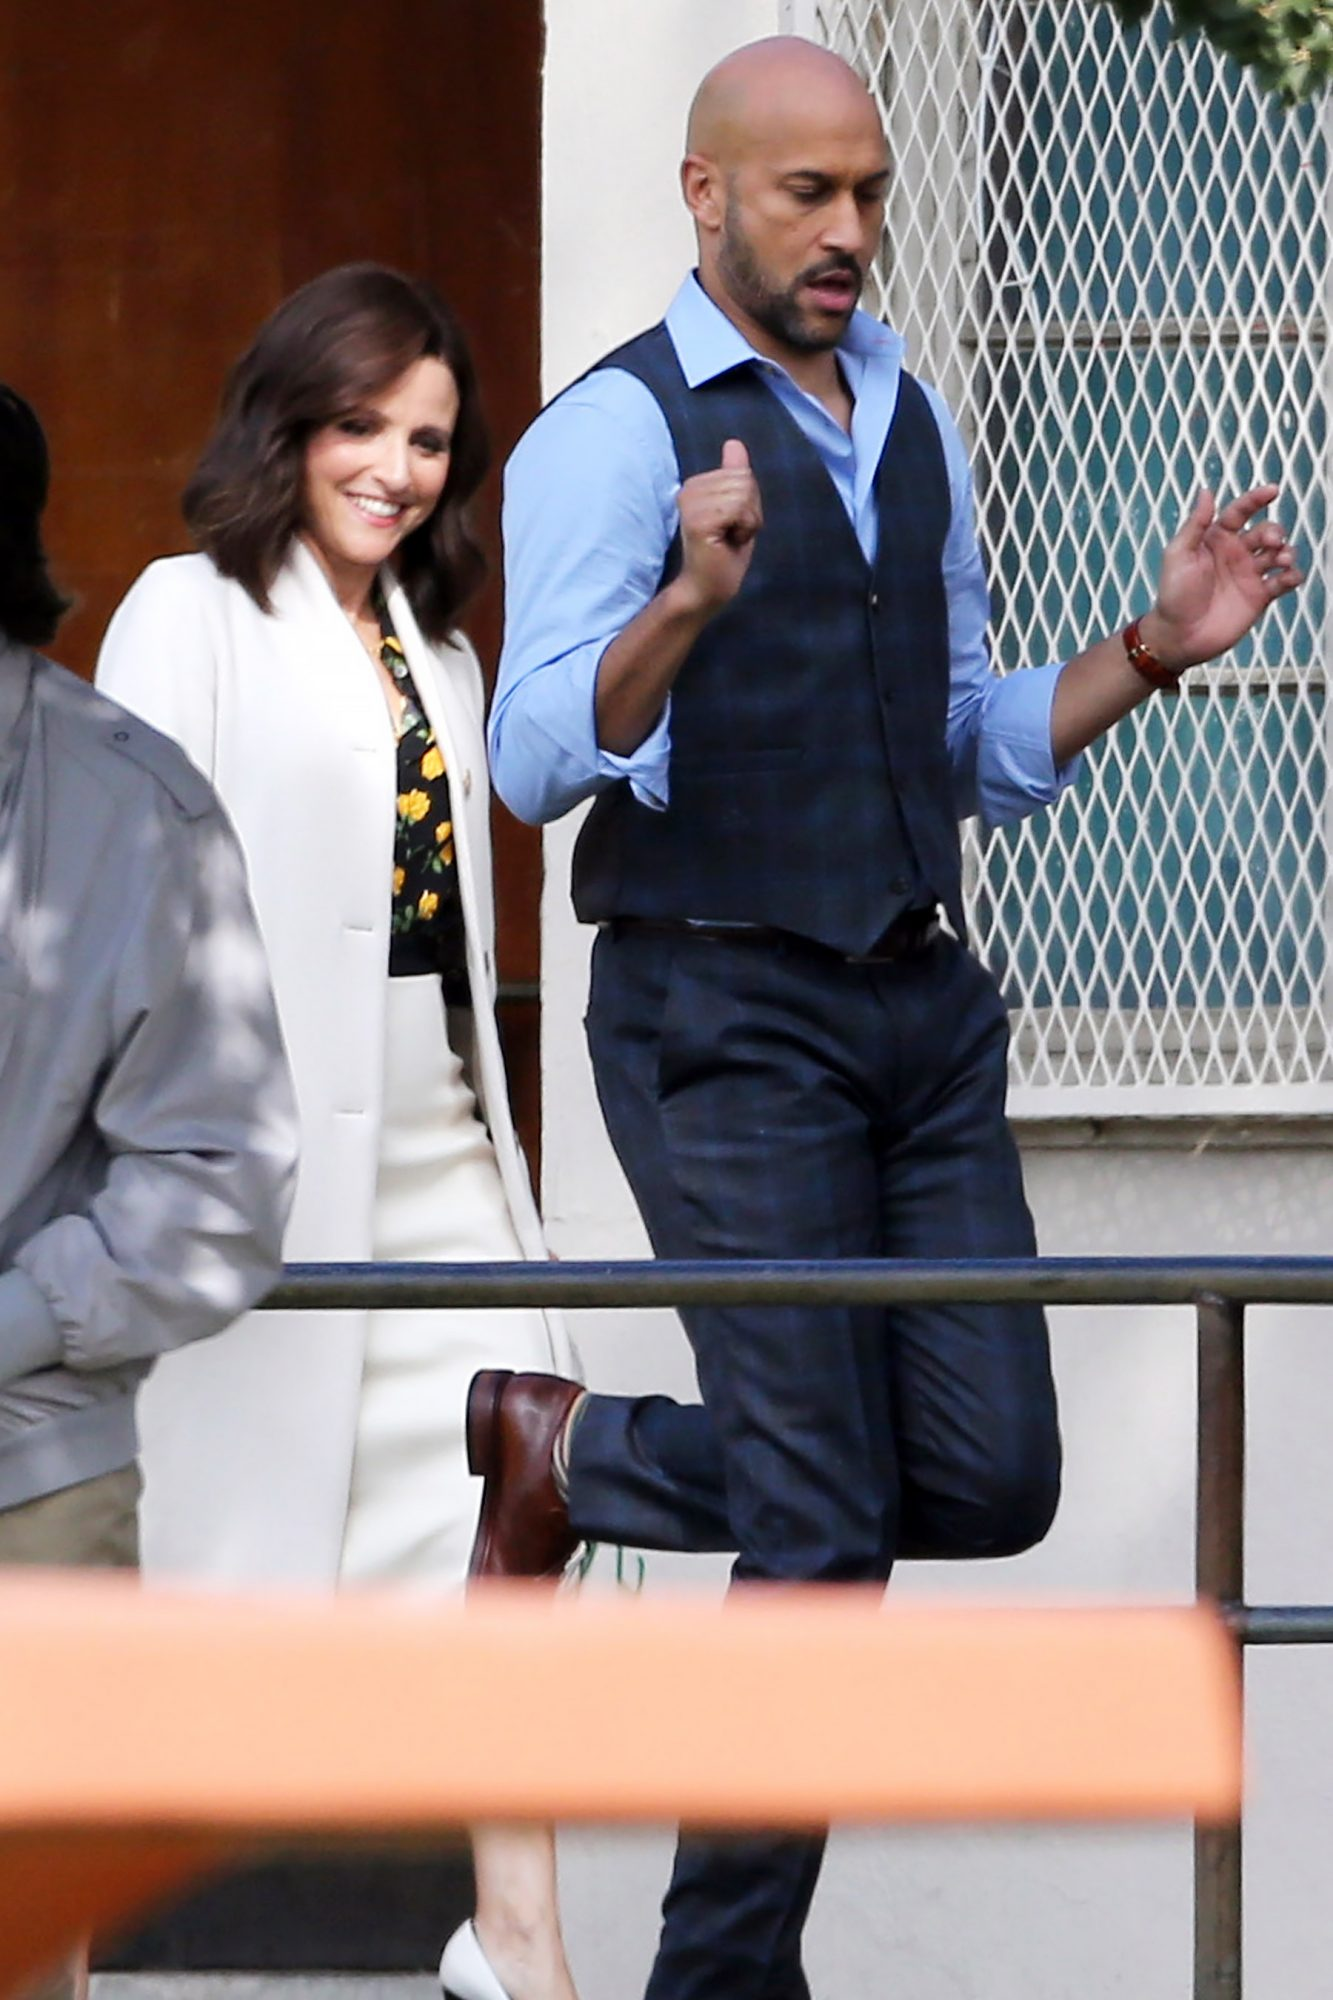 EXCLUSIVE: Julia Louis-Dreyfus and special guest Keegan-Michael Key show off their dance moves as they film scenes for the seventh season of Veep